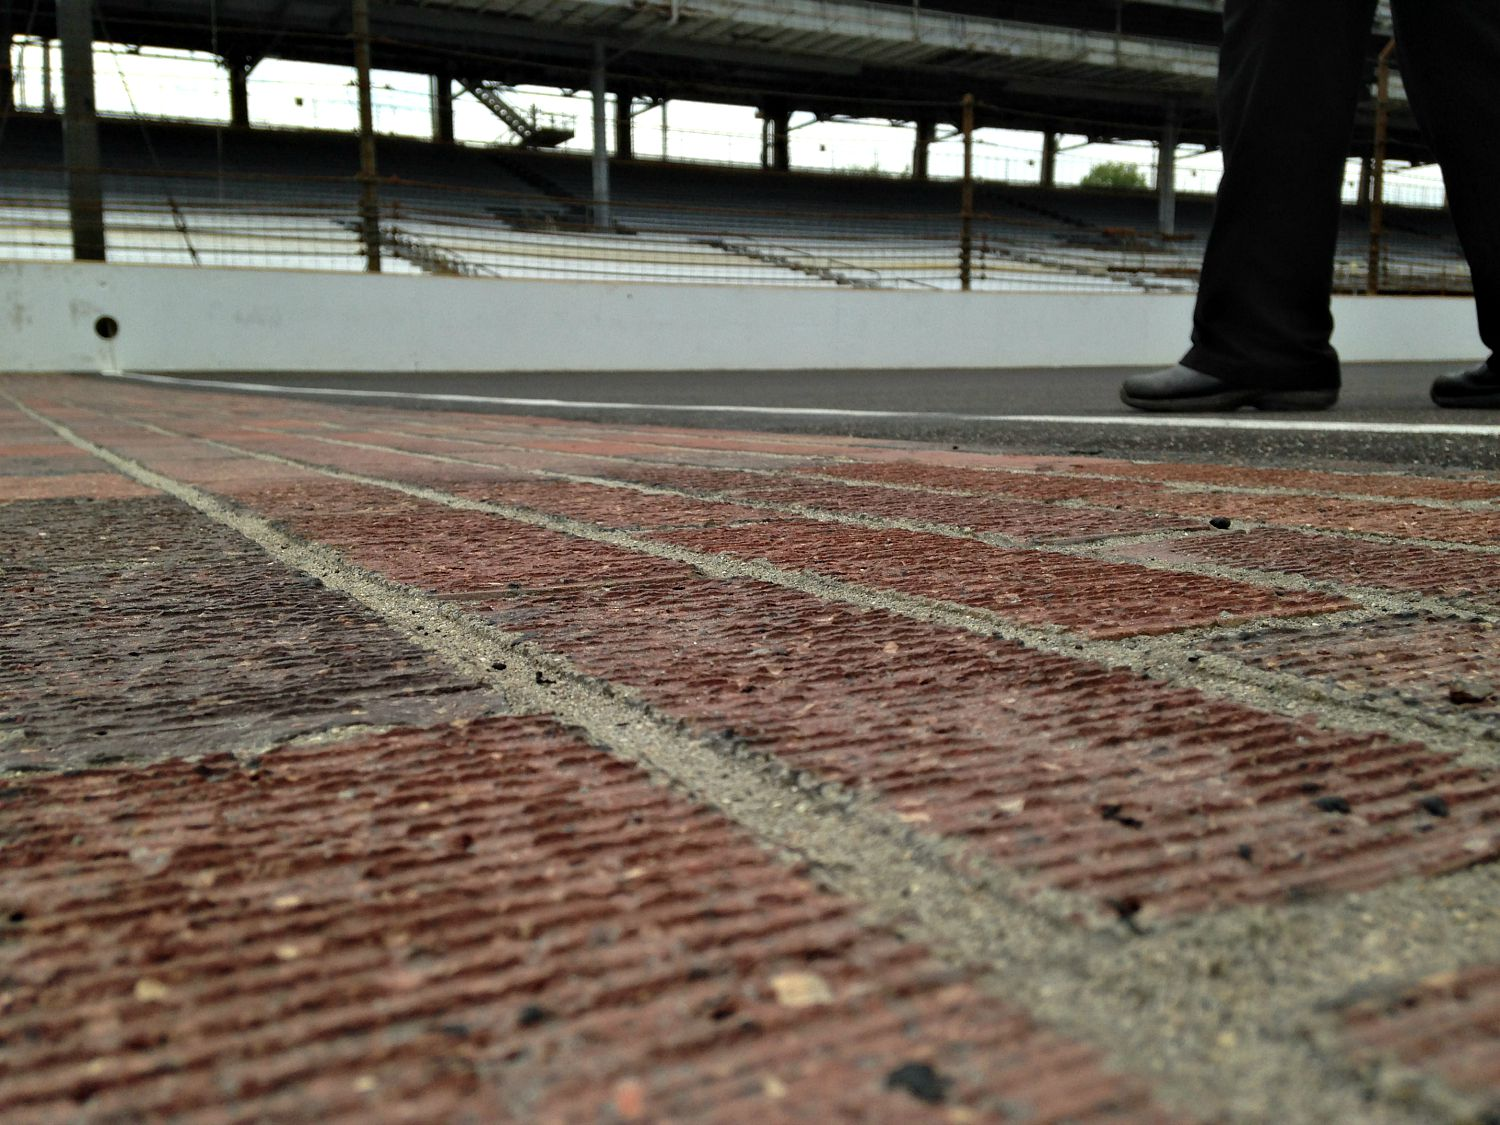 The yard of bricks at indianapolis motor speedway kiss my for All brick